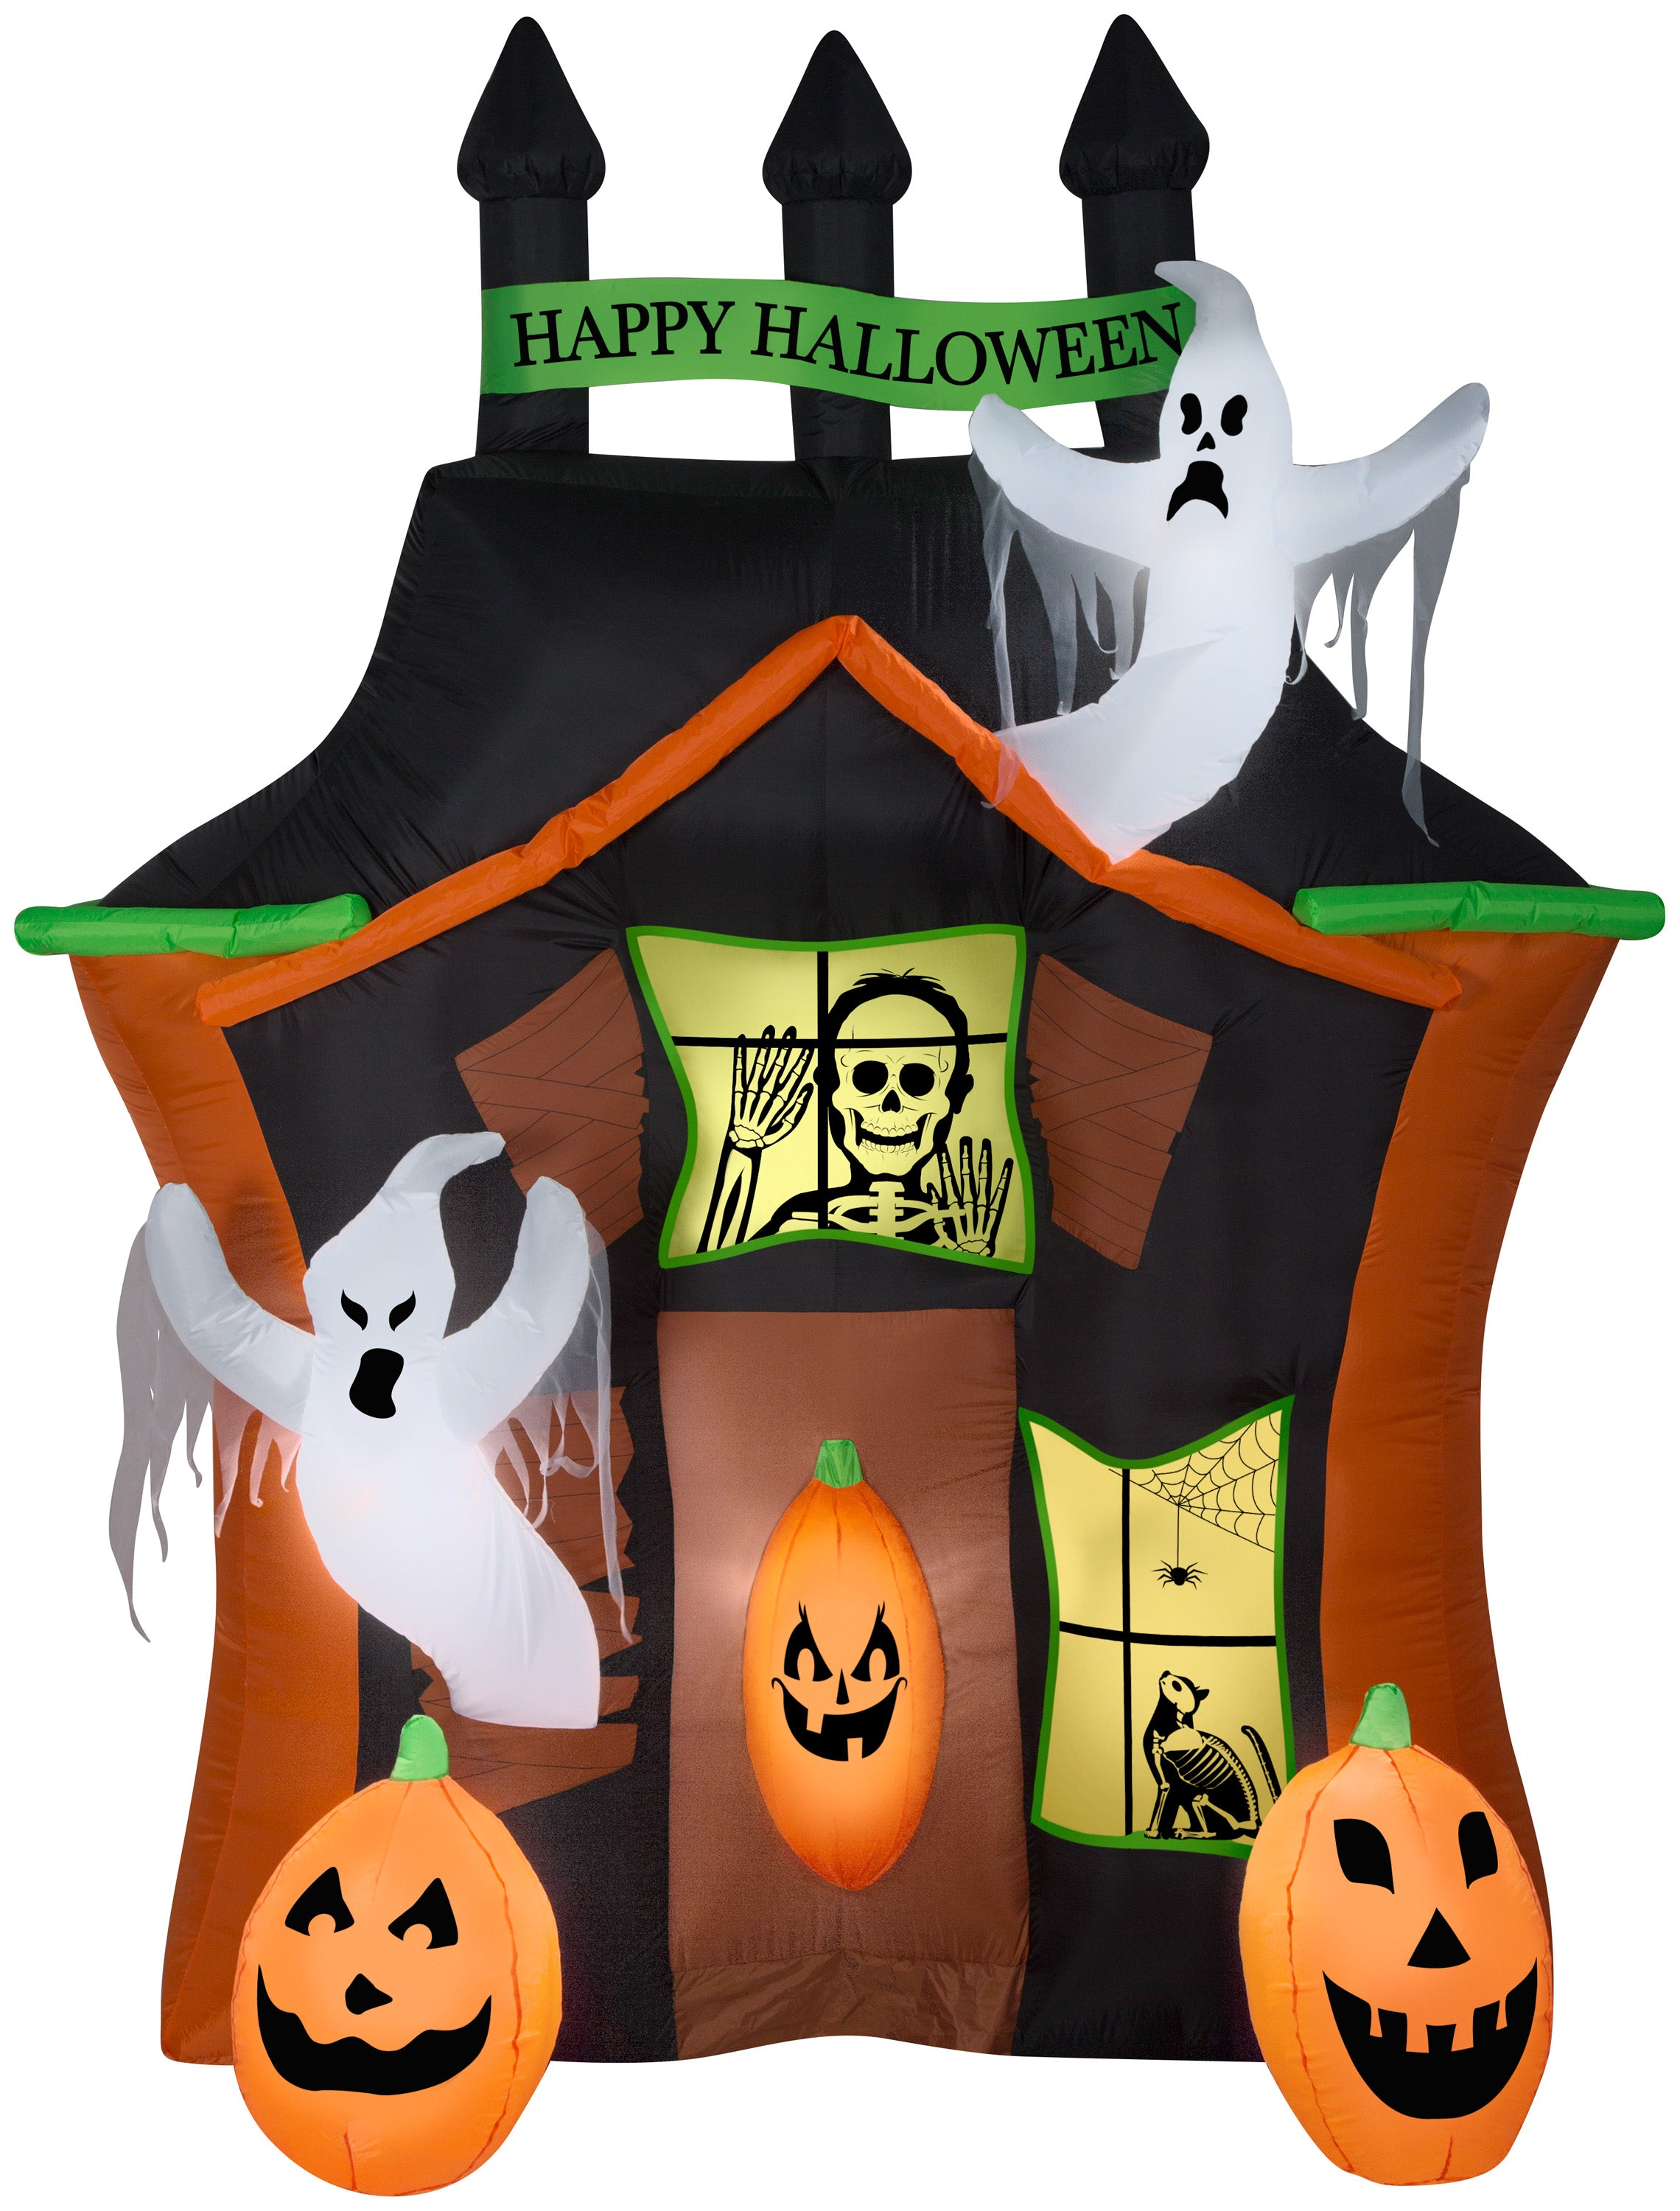 9' Airblown Haunted Ghost House Scene Halloween Inflatable